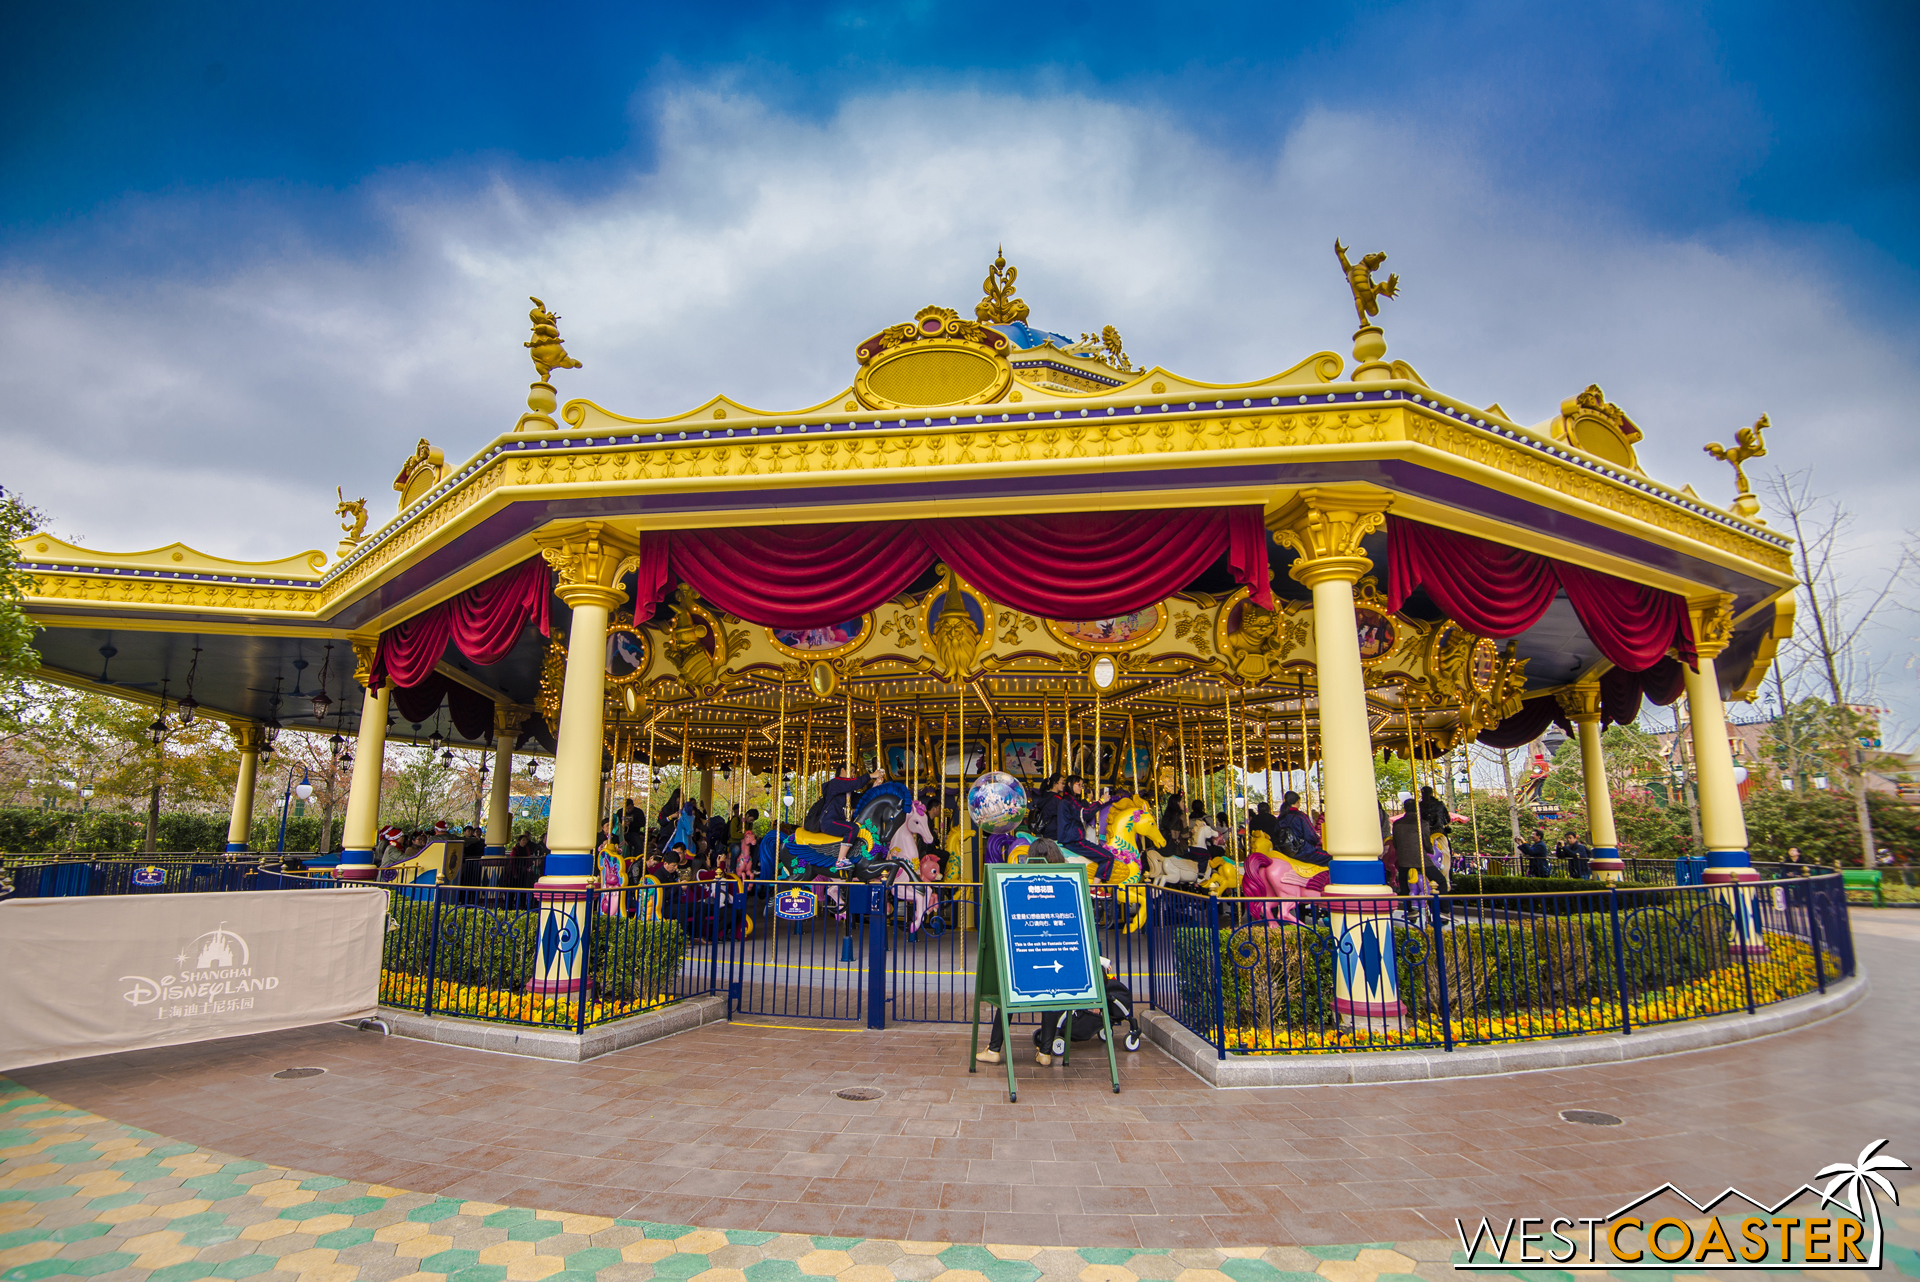 The lovely and whimsical Fantasia Carousel.